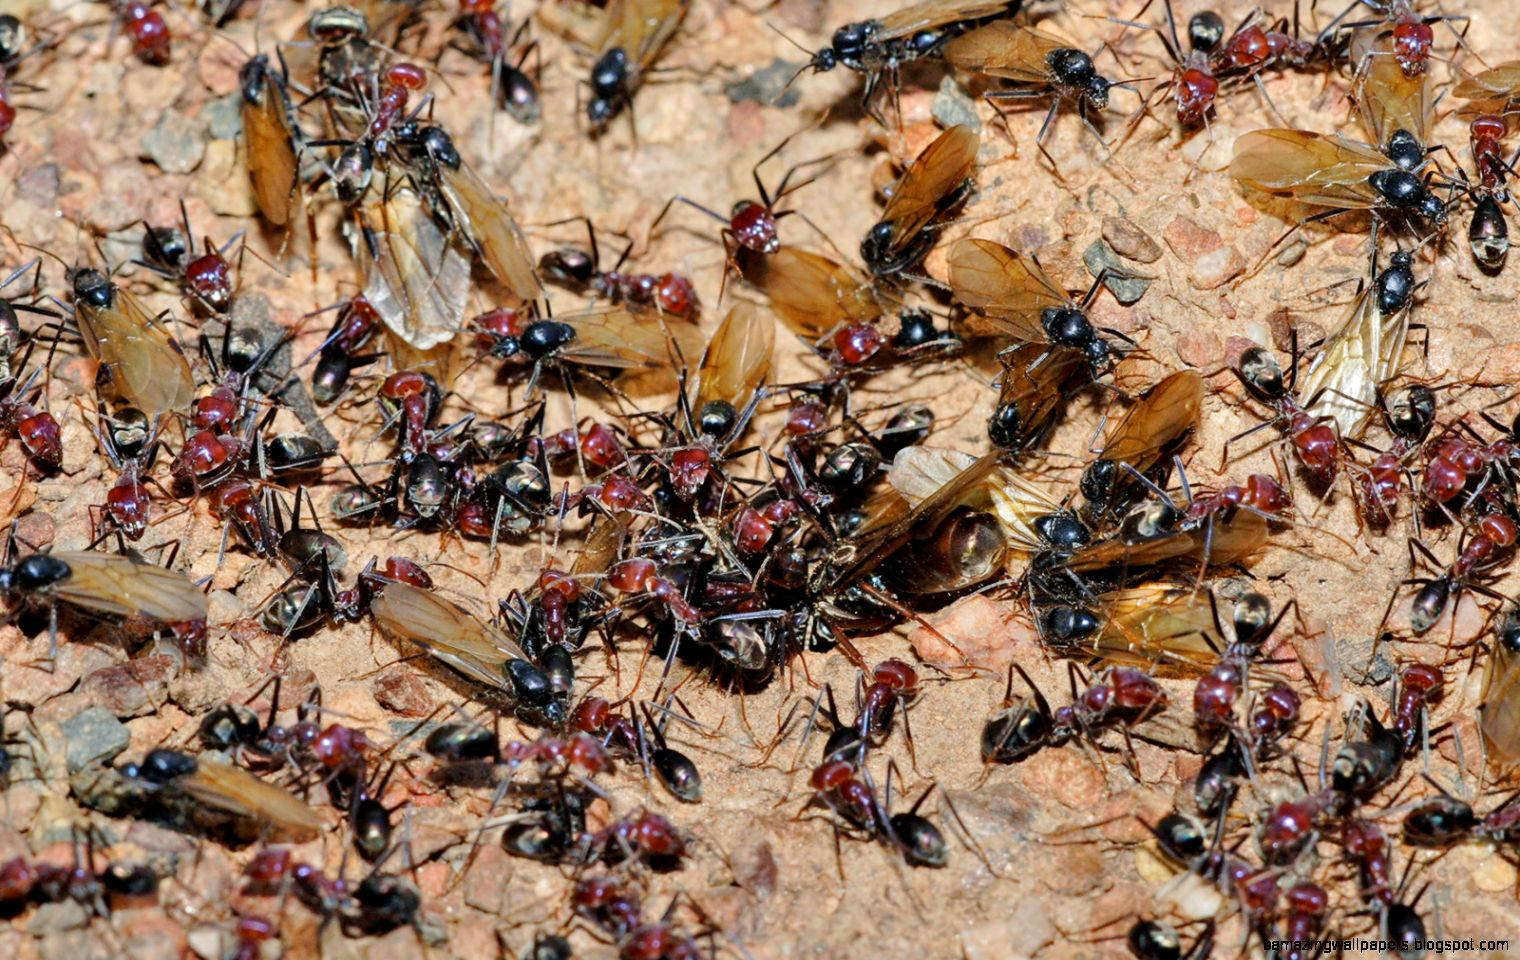 Queen ant   Wikipedia the free encyclopedia